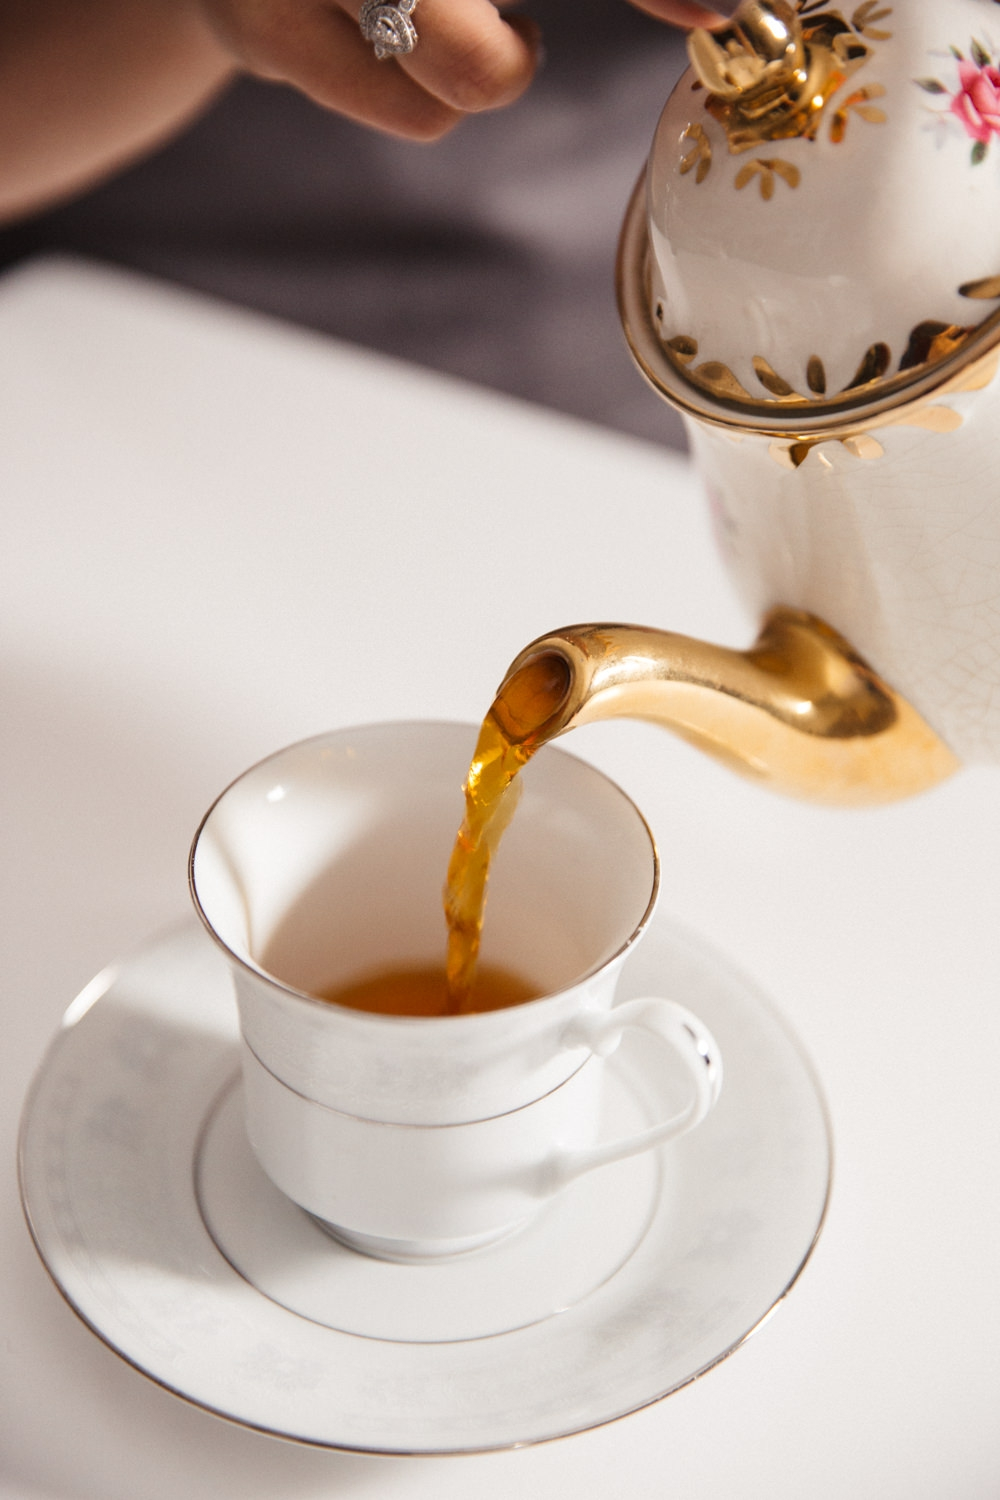 Pouring speciality tea from a vintage white teapot into a white and silver teacup.